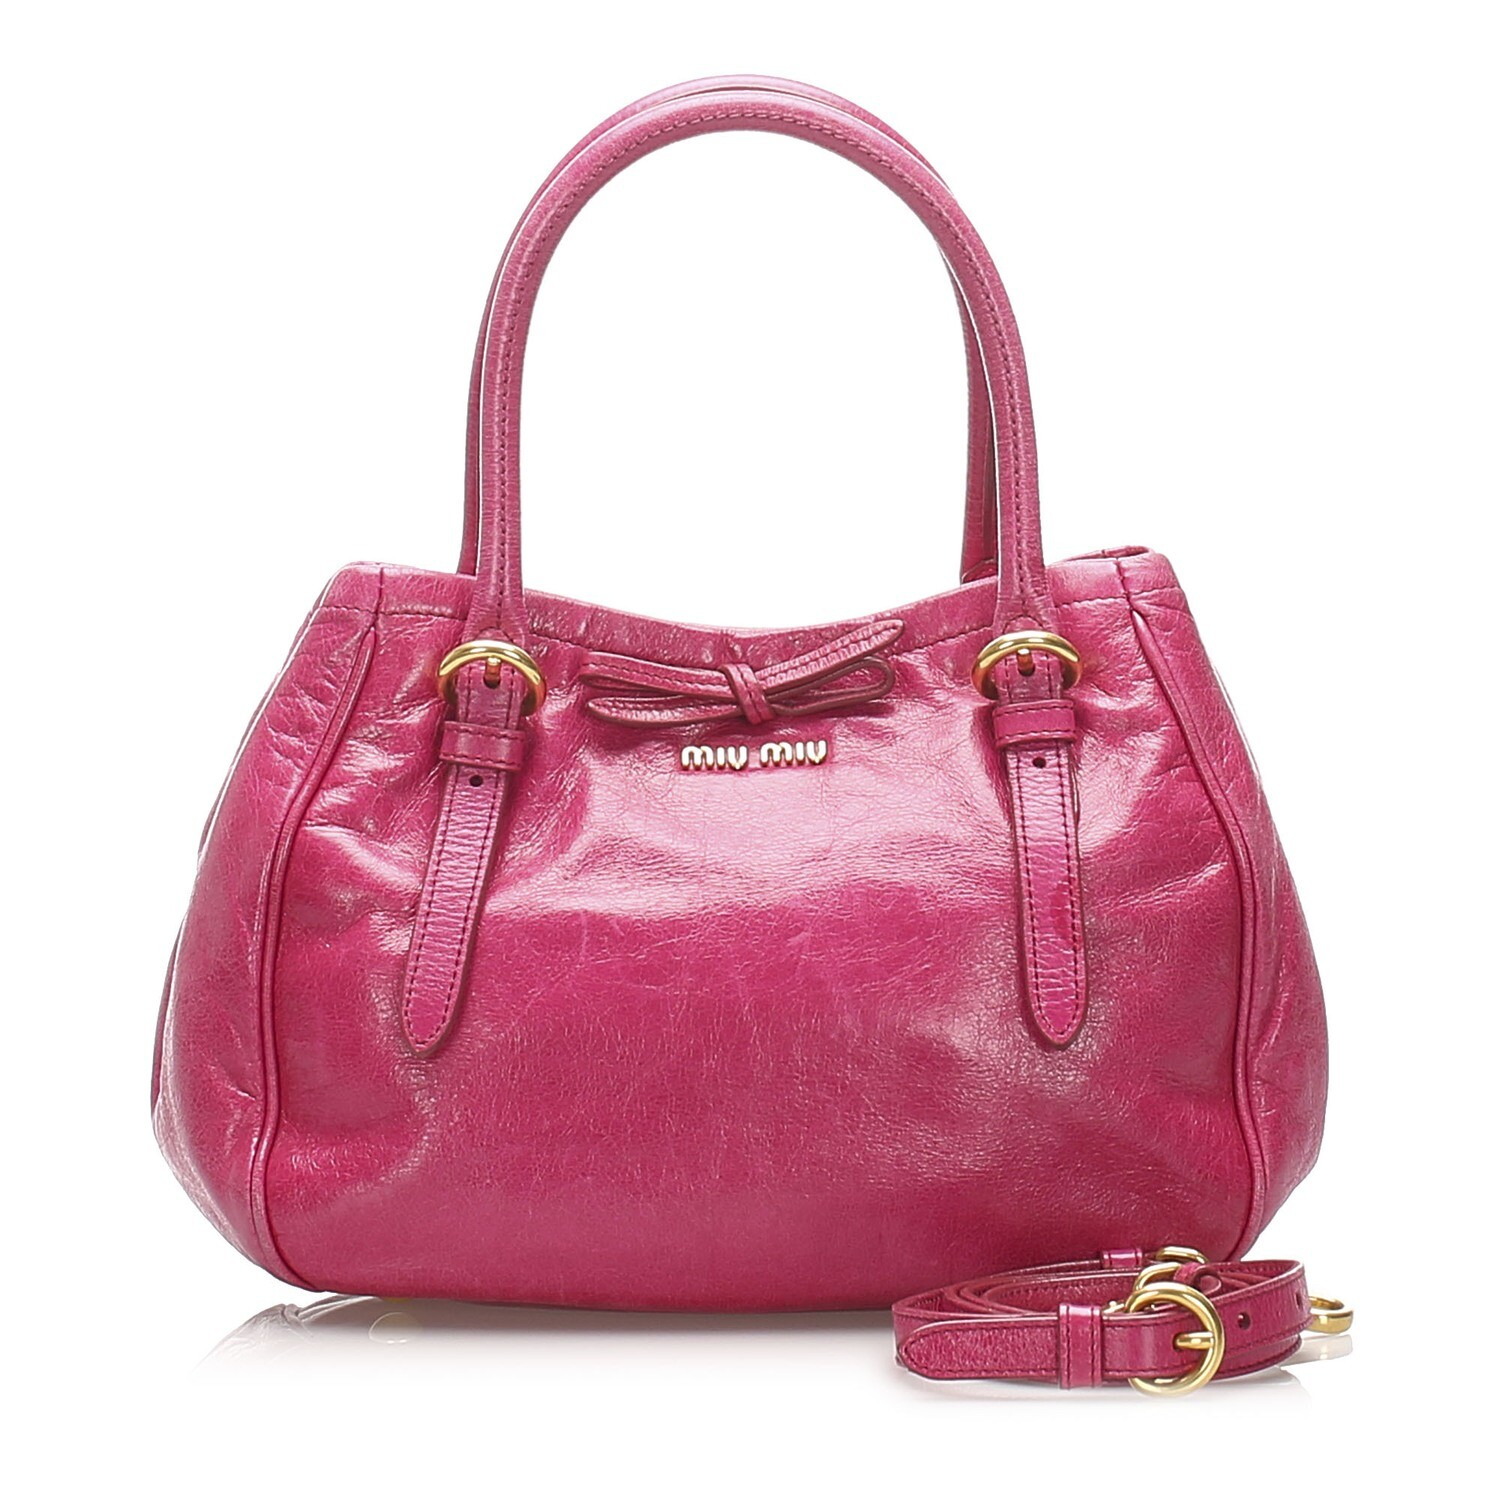 Miu Miu Vitello Lux Satchel